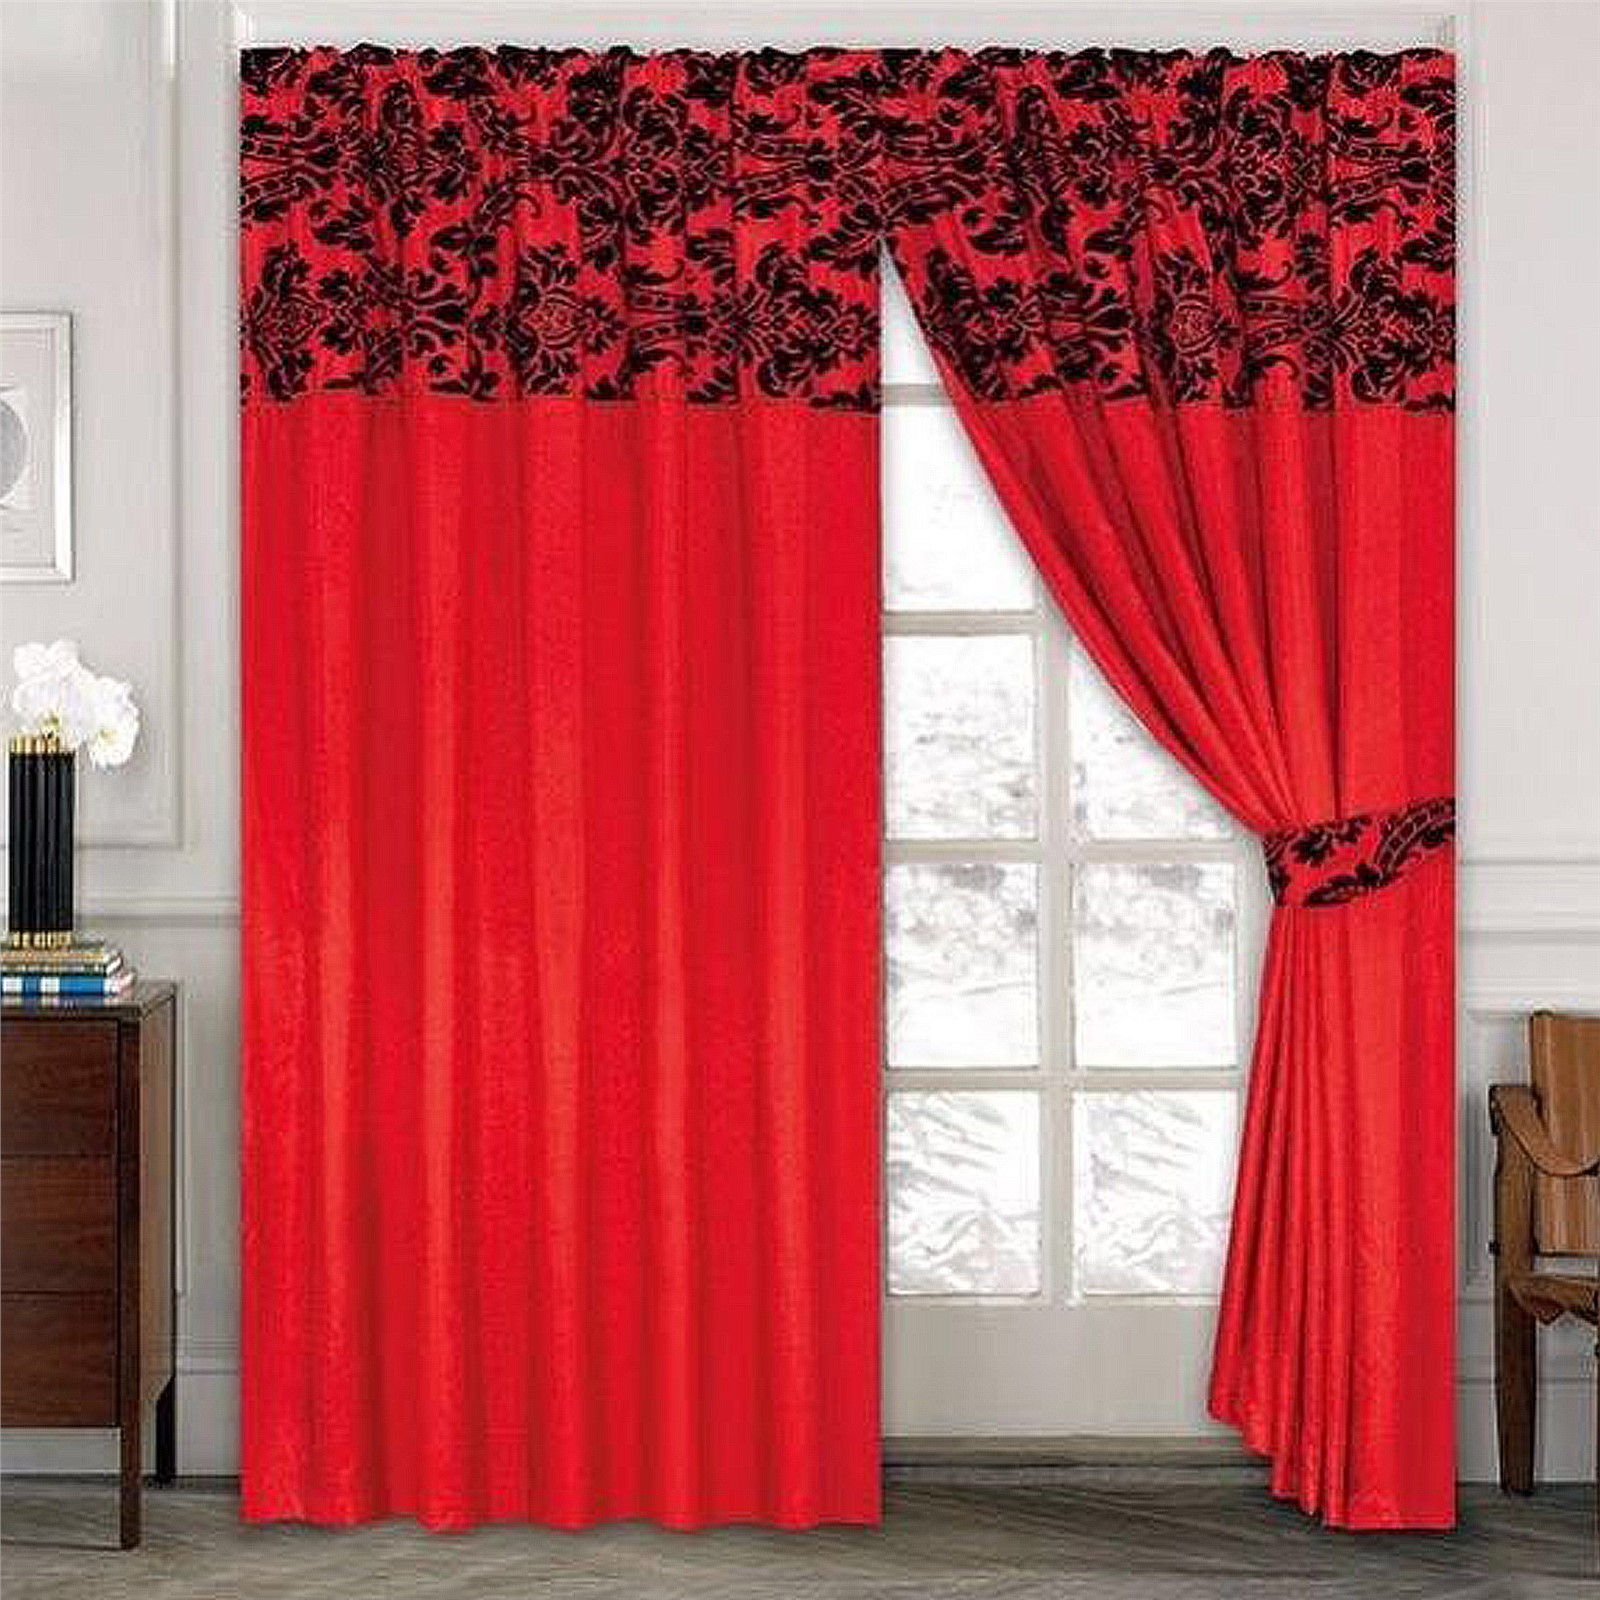 Thermal curtains - Luxury Damask Curtains Pair Of Half Flock Pencil Pleat Window Curtain